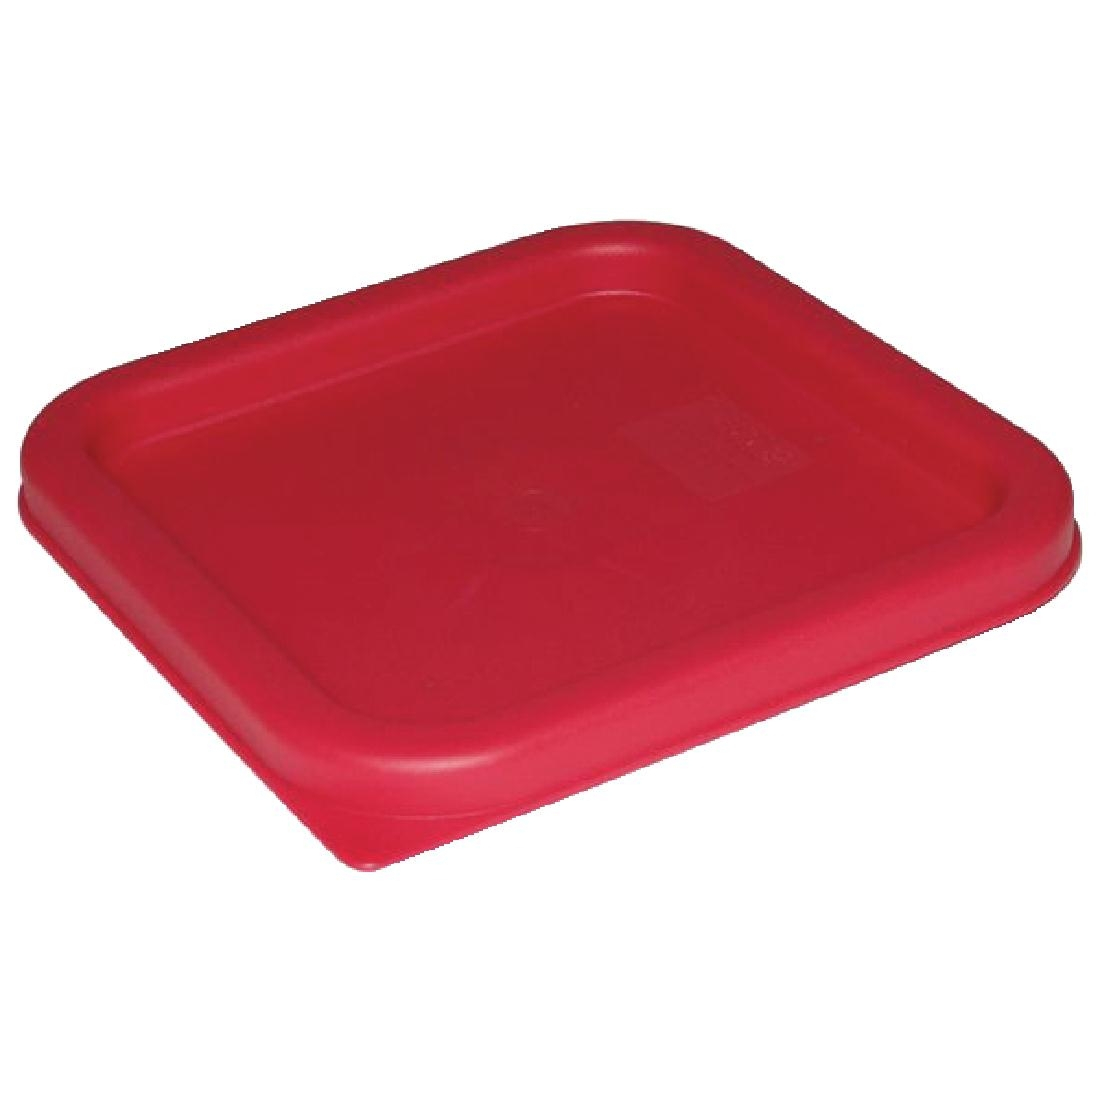 Vogue Large Square Lid - Red